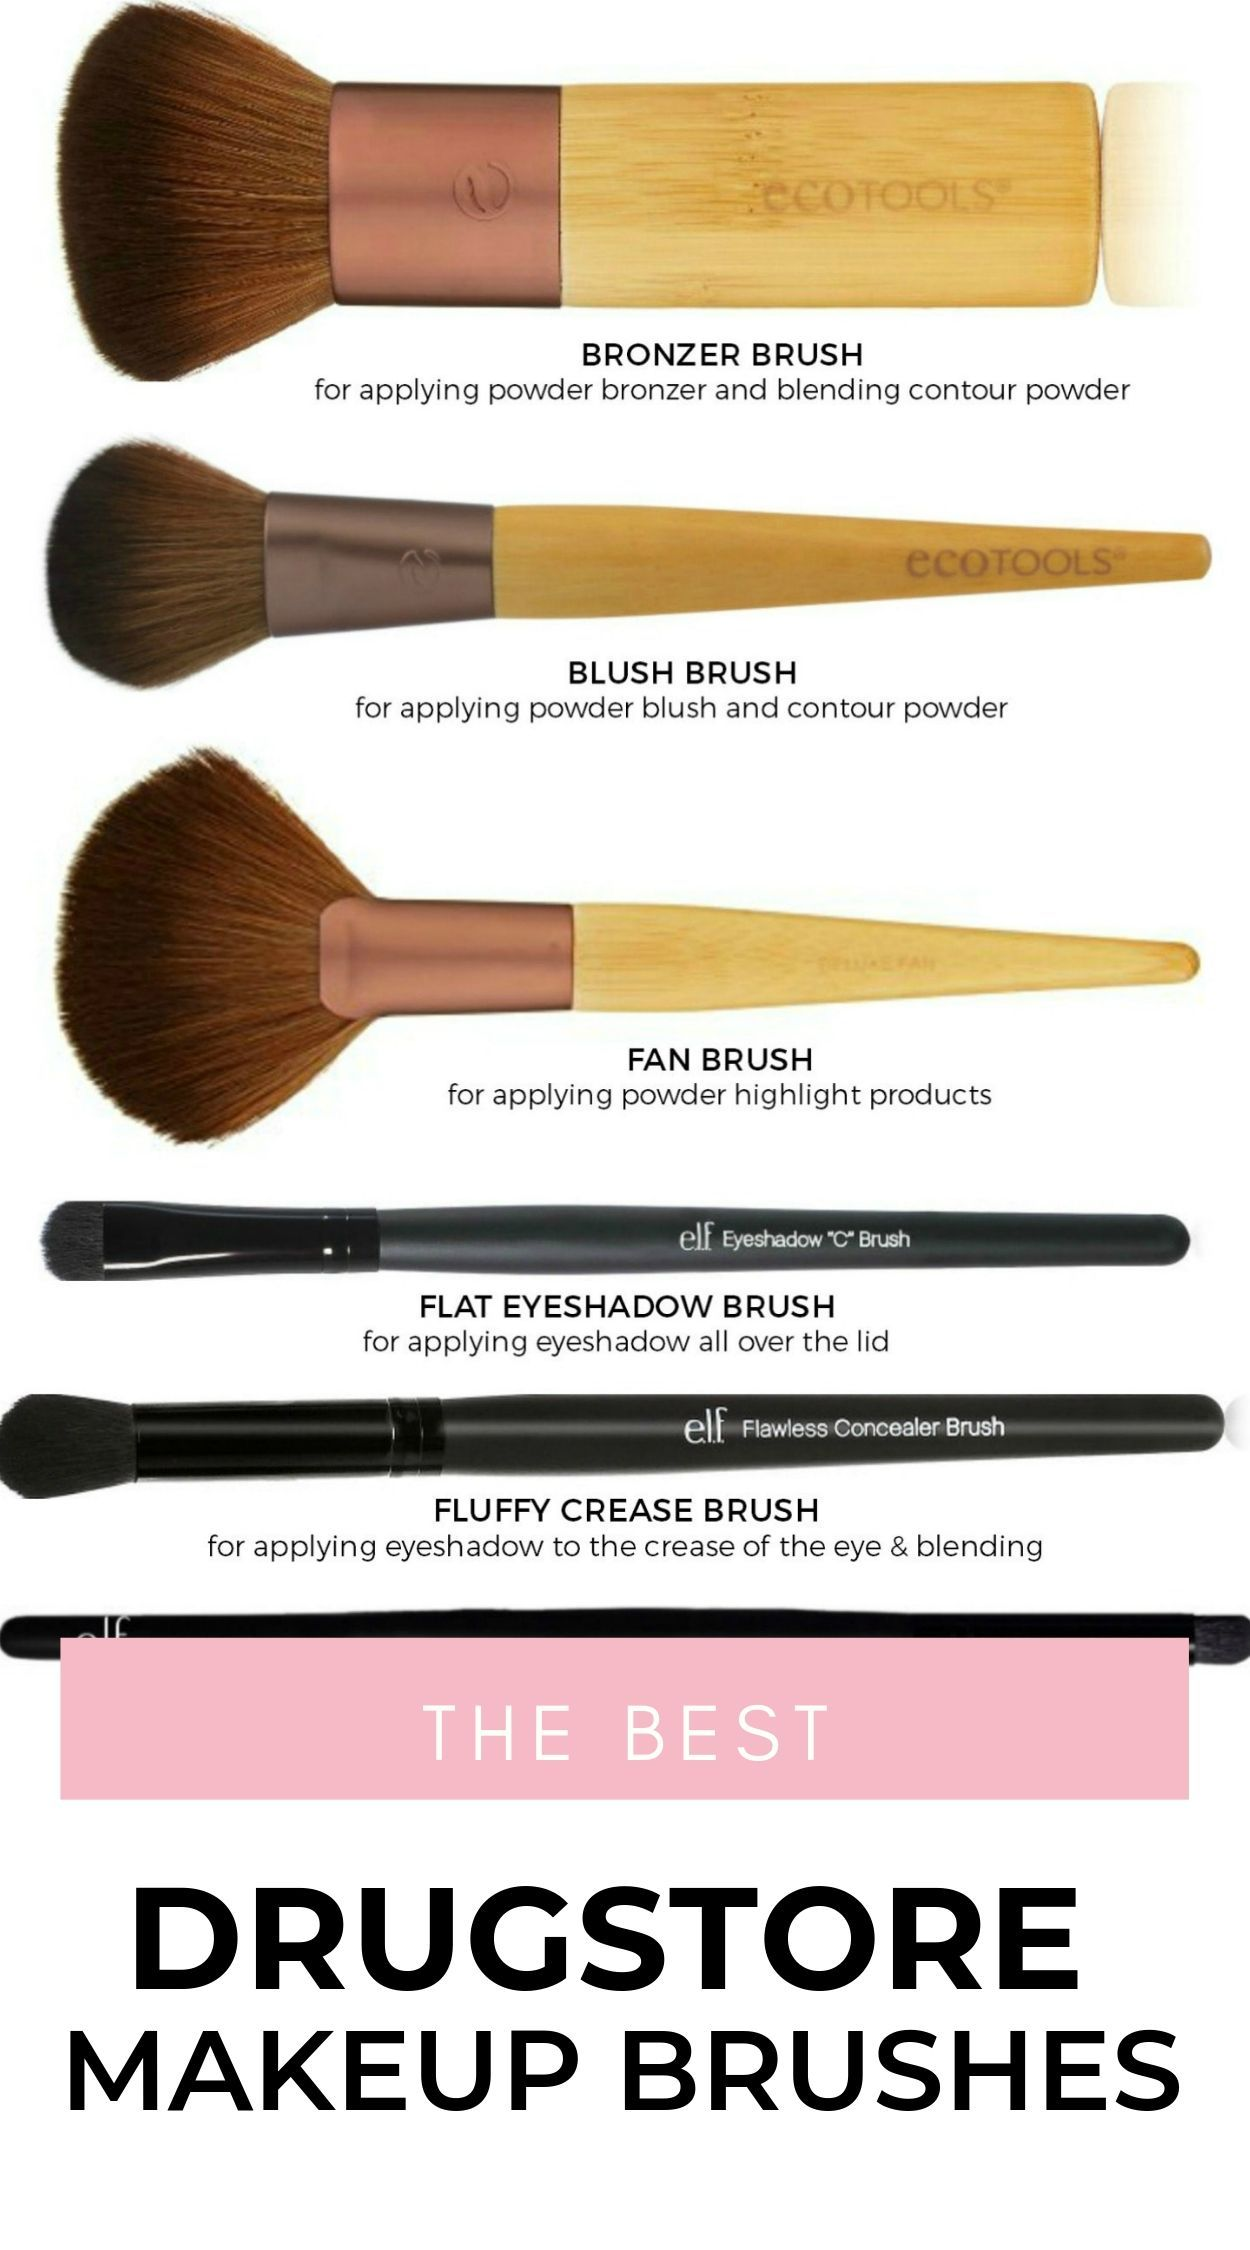 The Best Drugstore Makeup Brushes Best Drugstore Makeup Back To School Makeup Drugstore Makeup